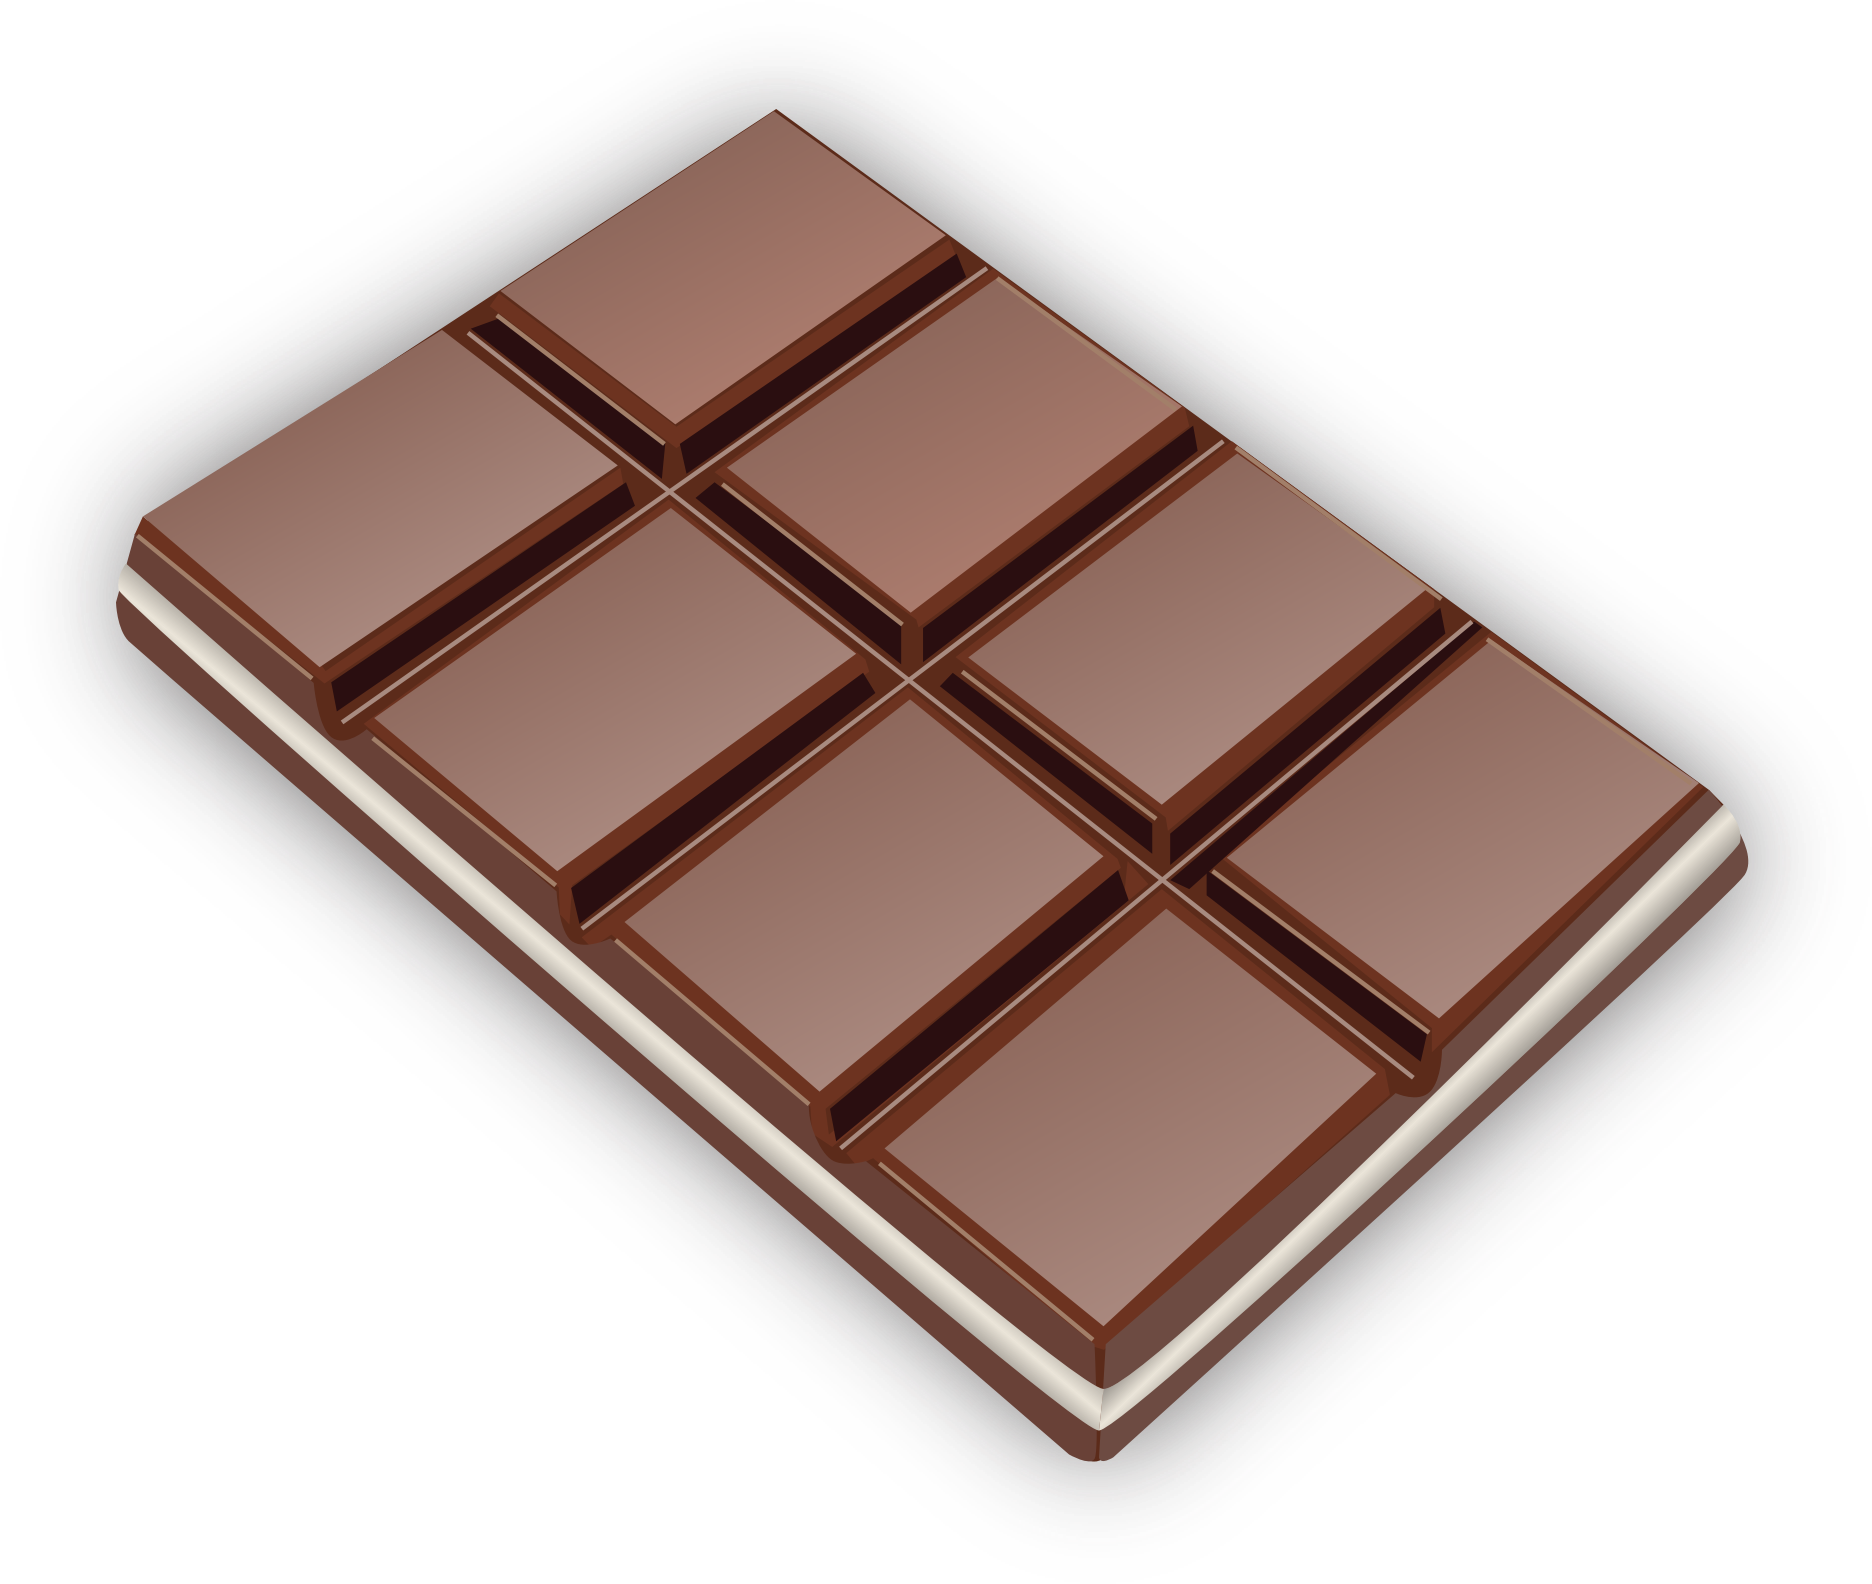 Chocolate bar - Chocolate Bar HD PNG